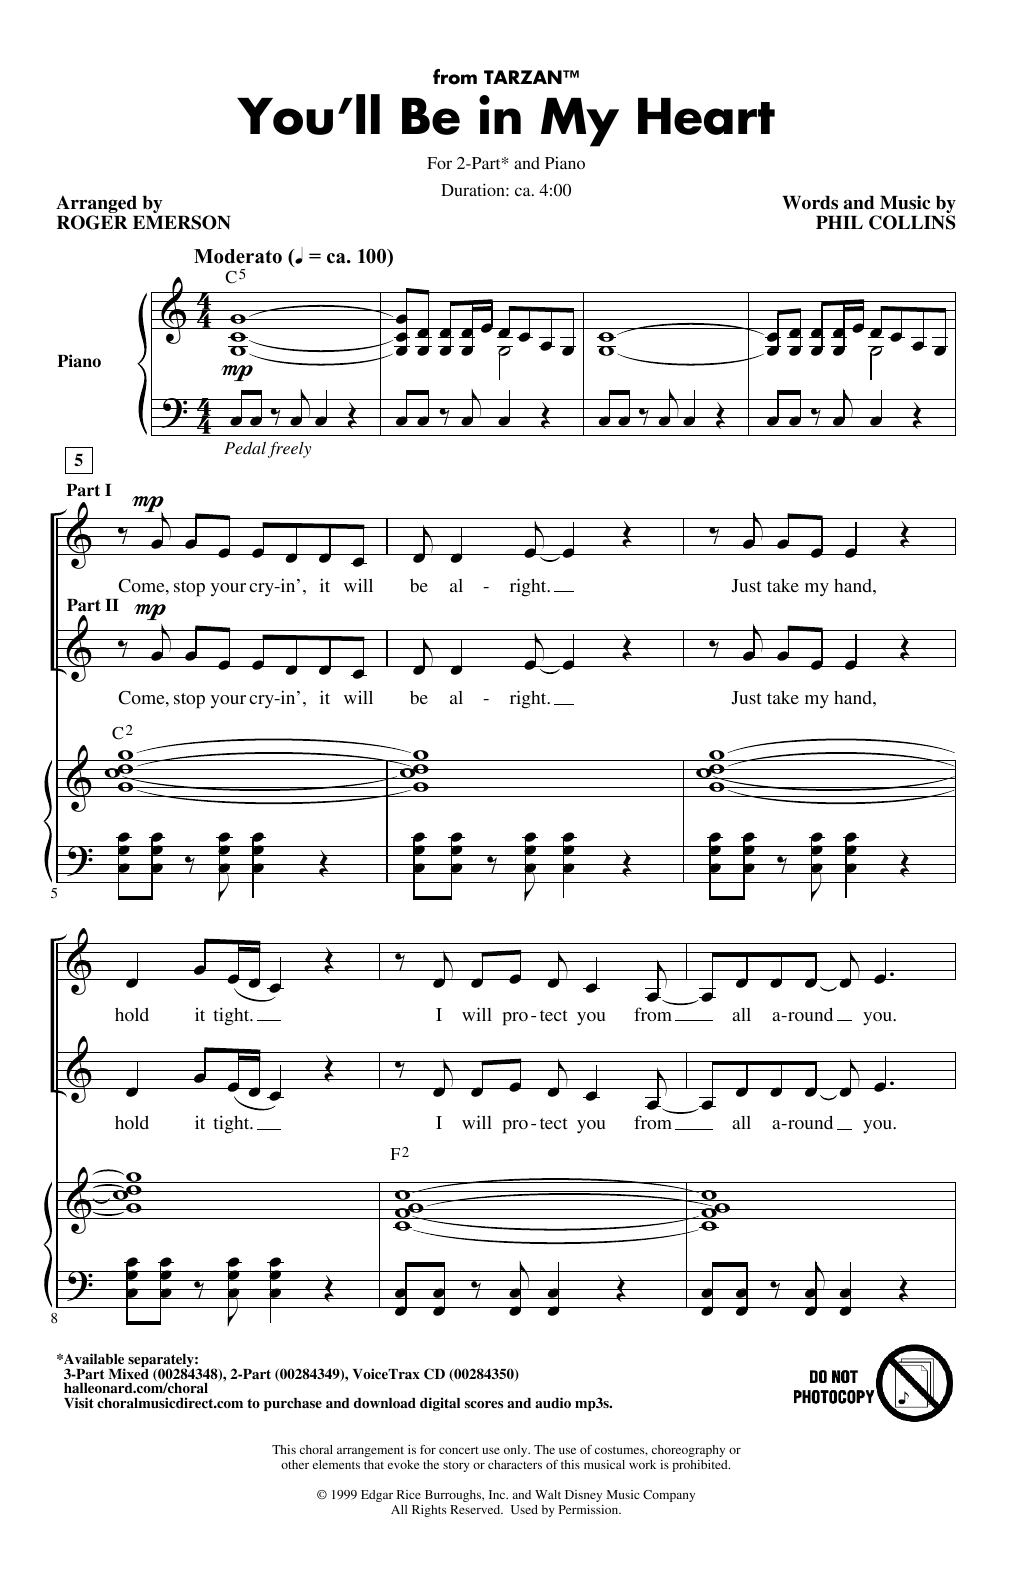 You'll Be In My Heart (from Tarzan) (arr. Roger Emerson) (2-Part Choir)